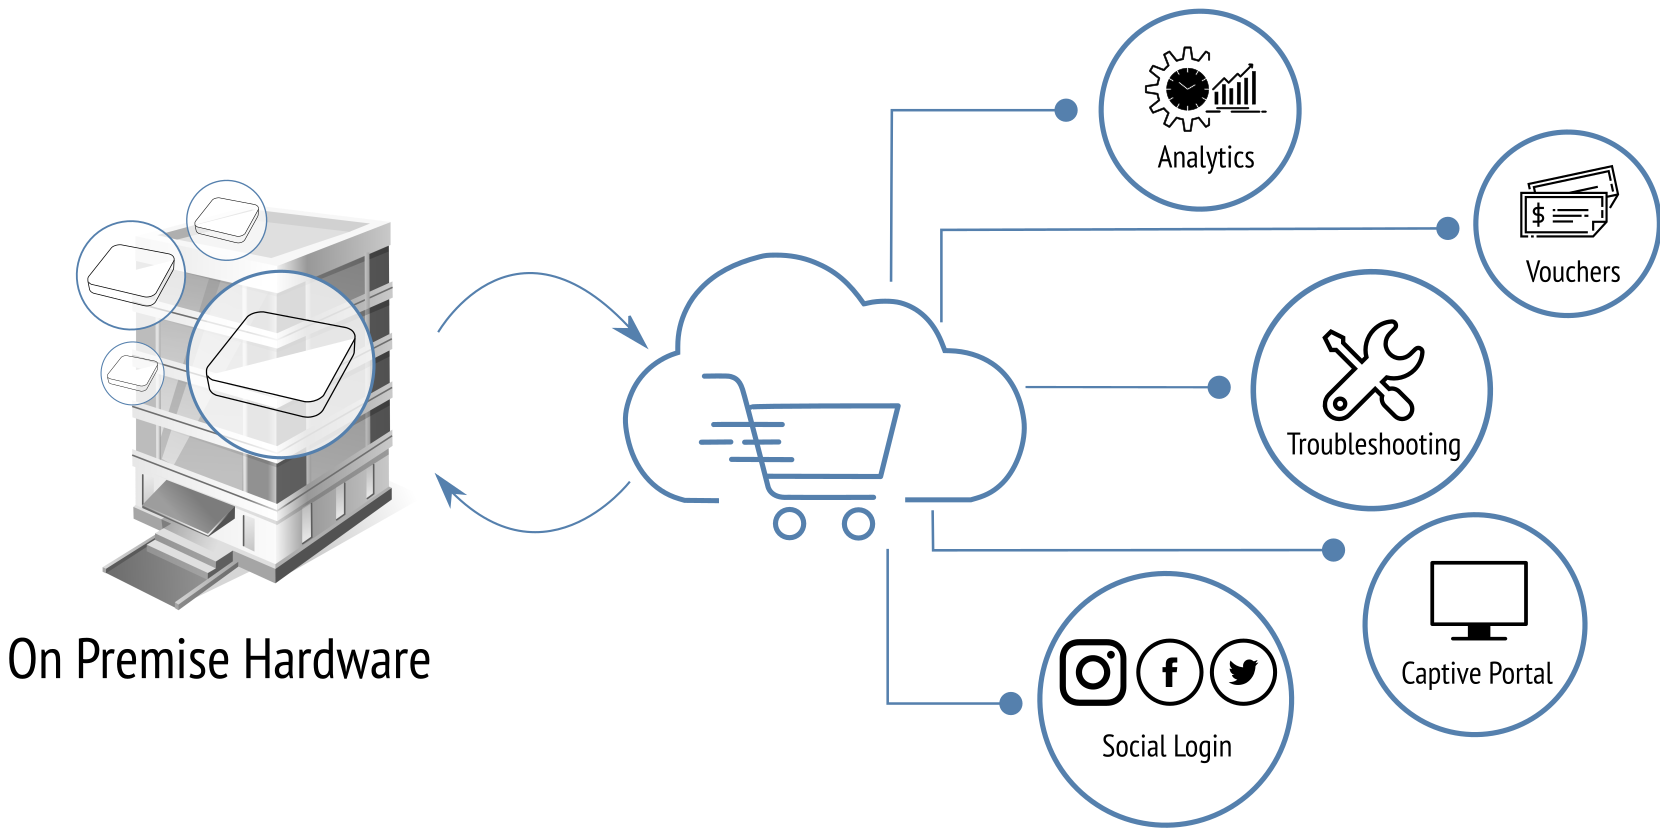 marketplace-in-the-cloud-featured-image.png